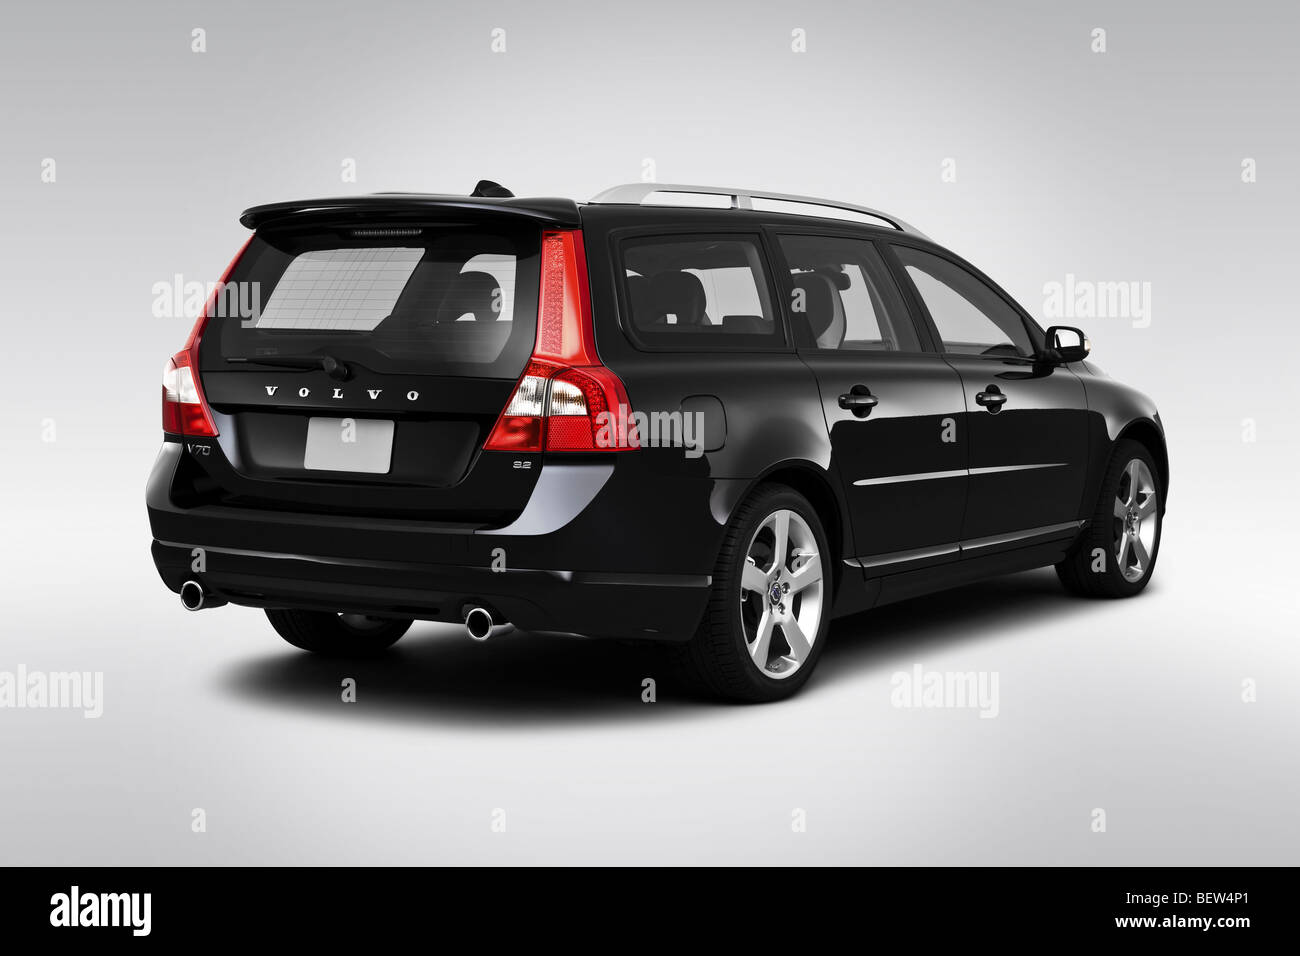 2010 volvo v70 32 a sr in black rear angle view BEW4P1 - 2010 Volvo Xc70 3 2